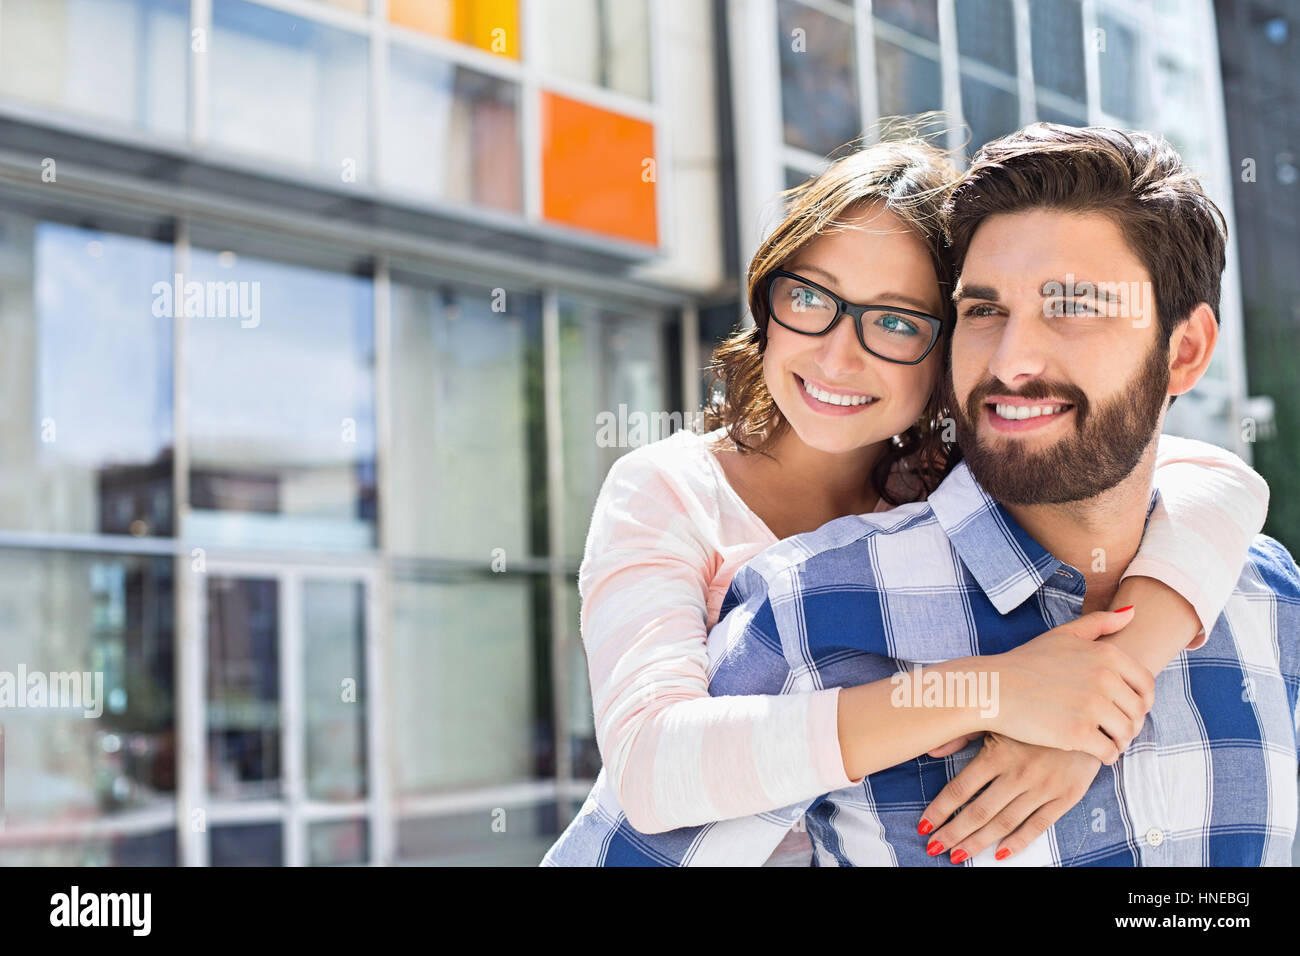 Loving Man piggybacking woman in city Photo Stock